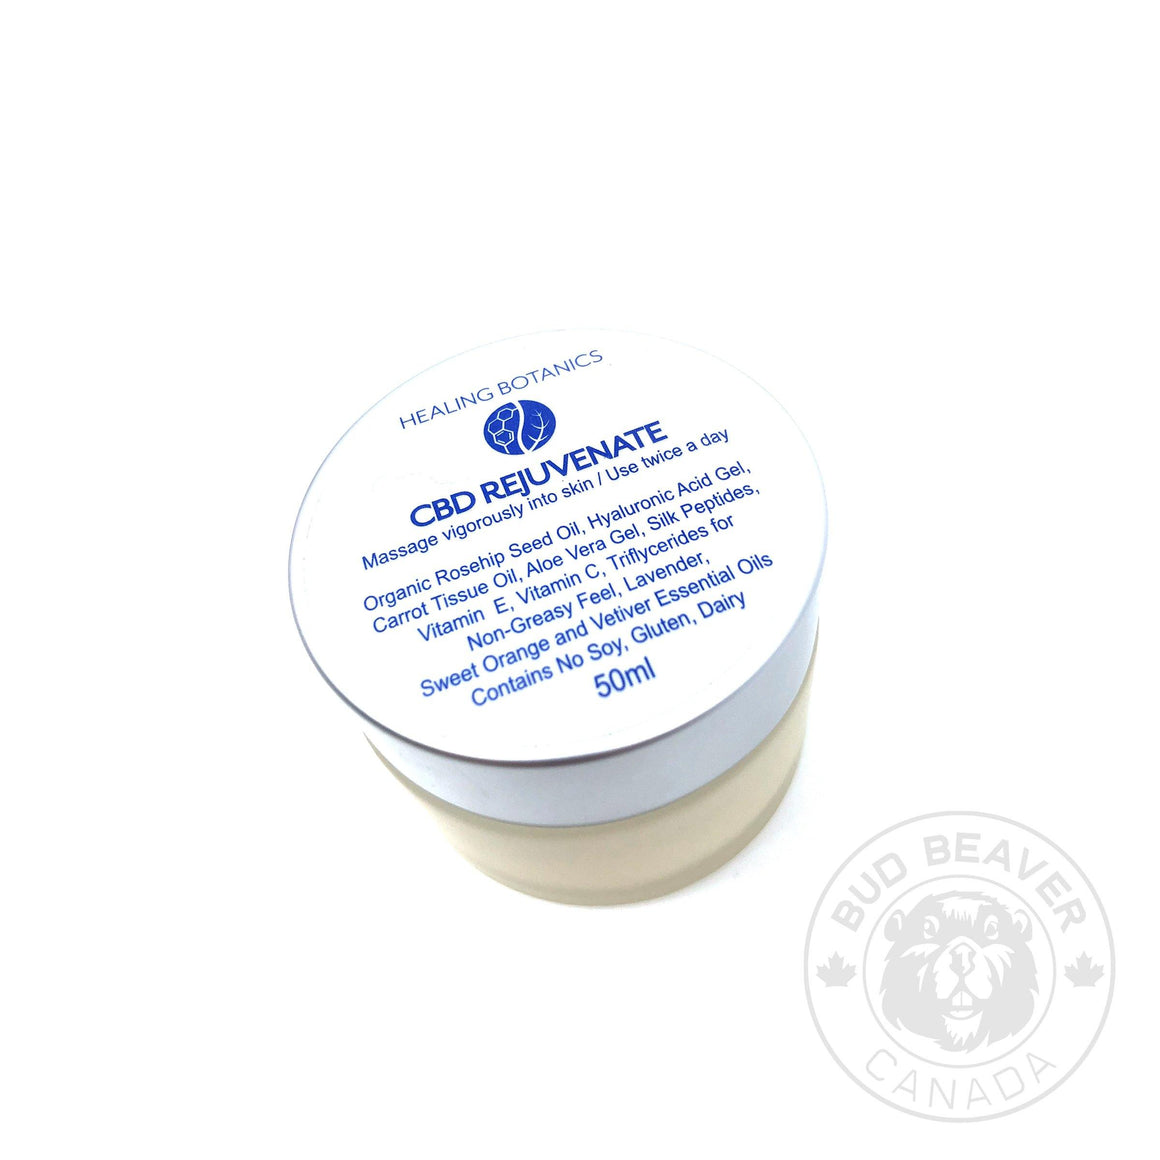 CBD Rejuvenate Face Cream